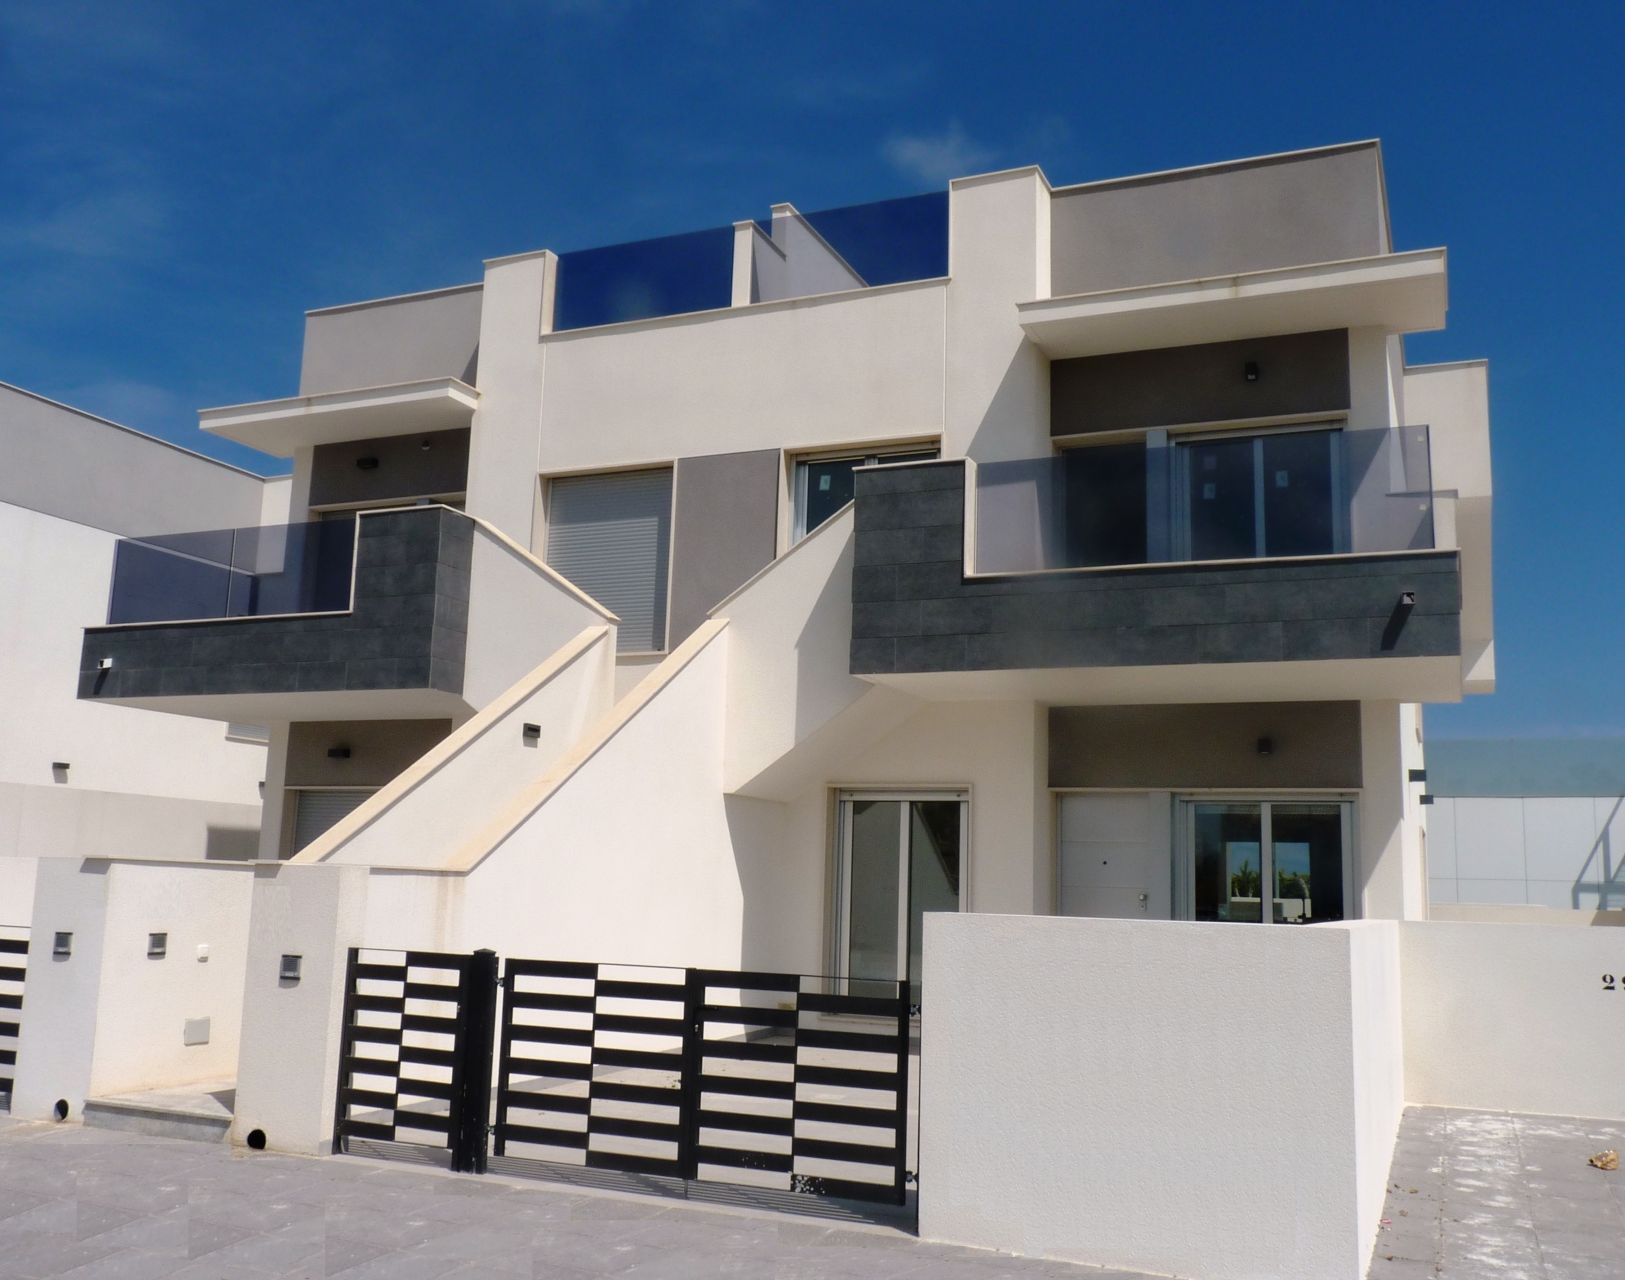 Apartments and duplex in Pilar de la Horadada 8